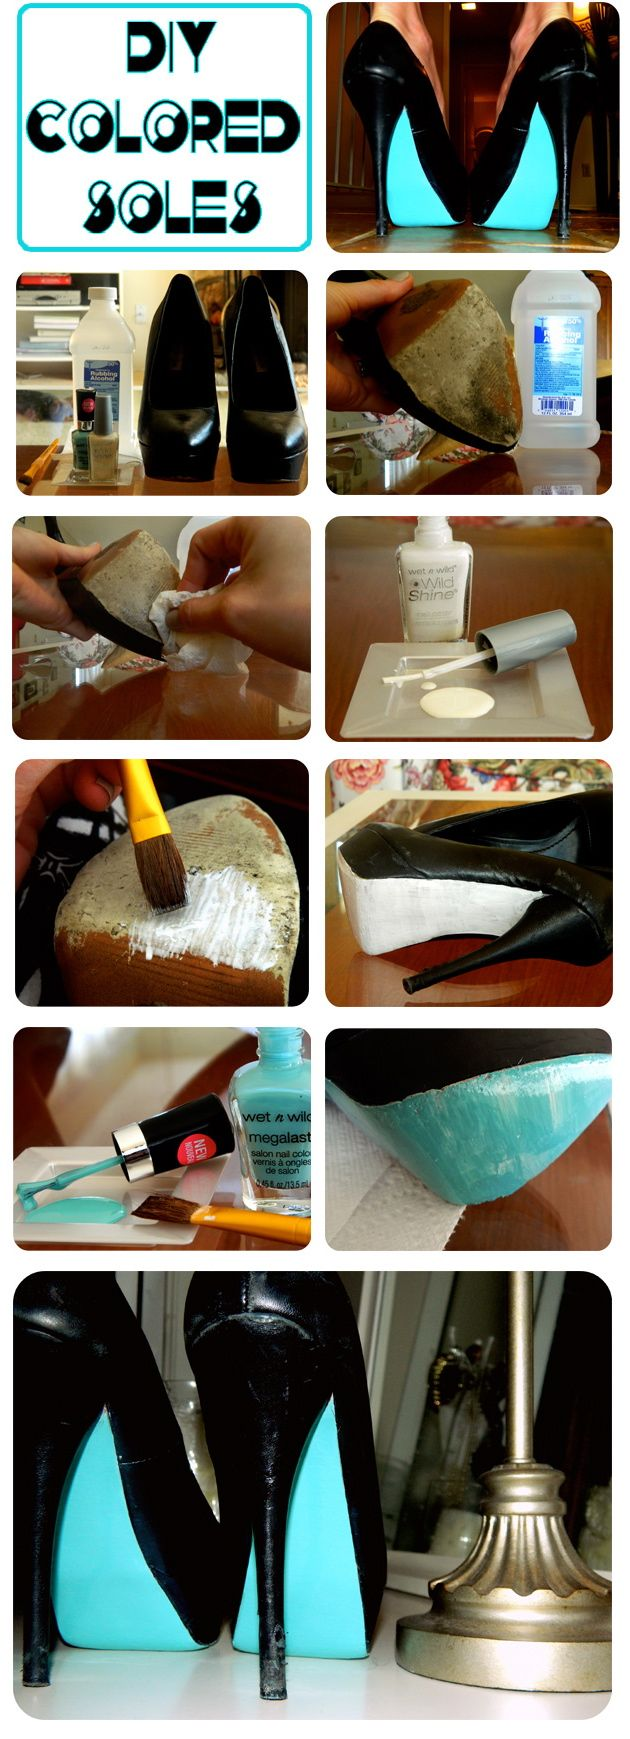 do-it-yourself colored soles